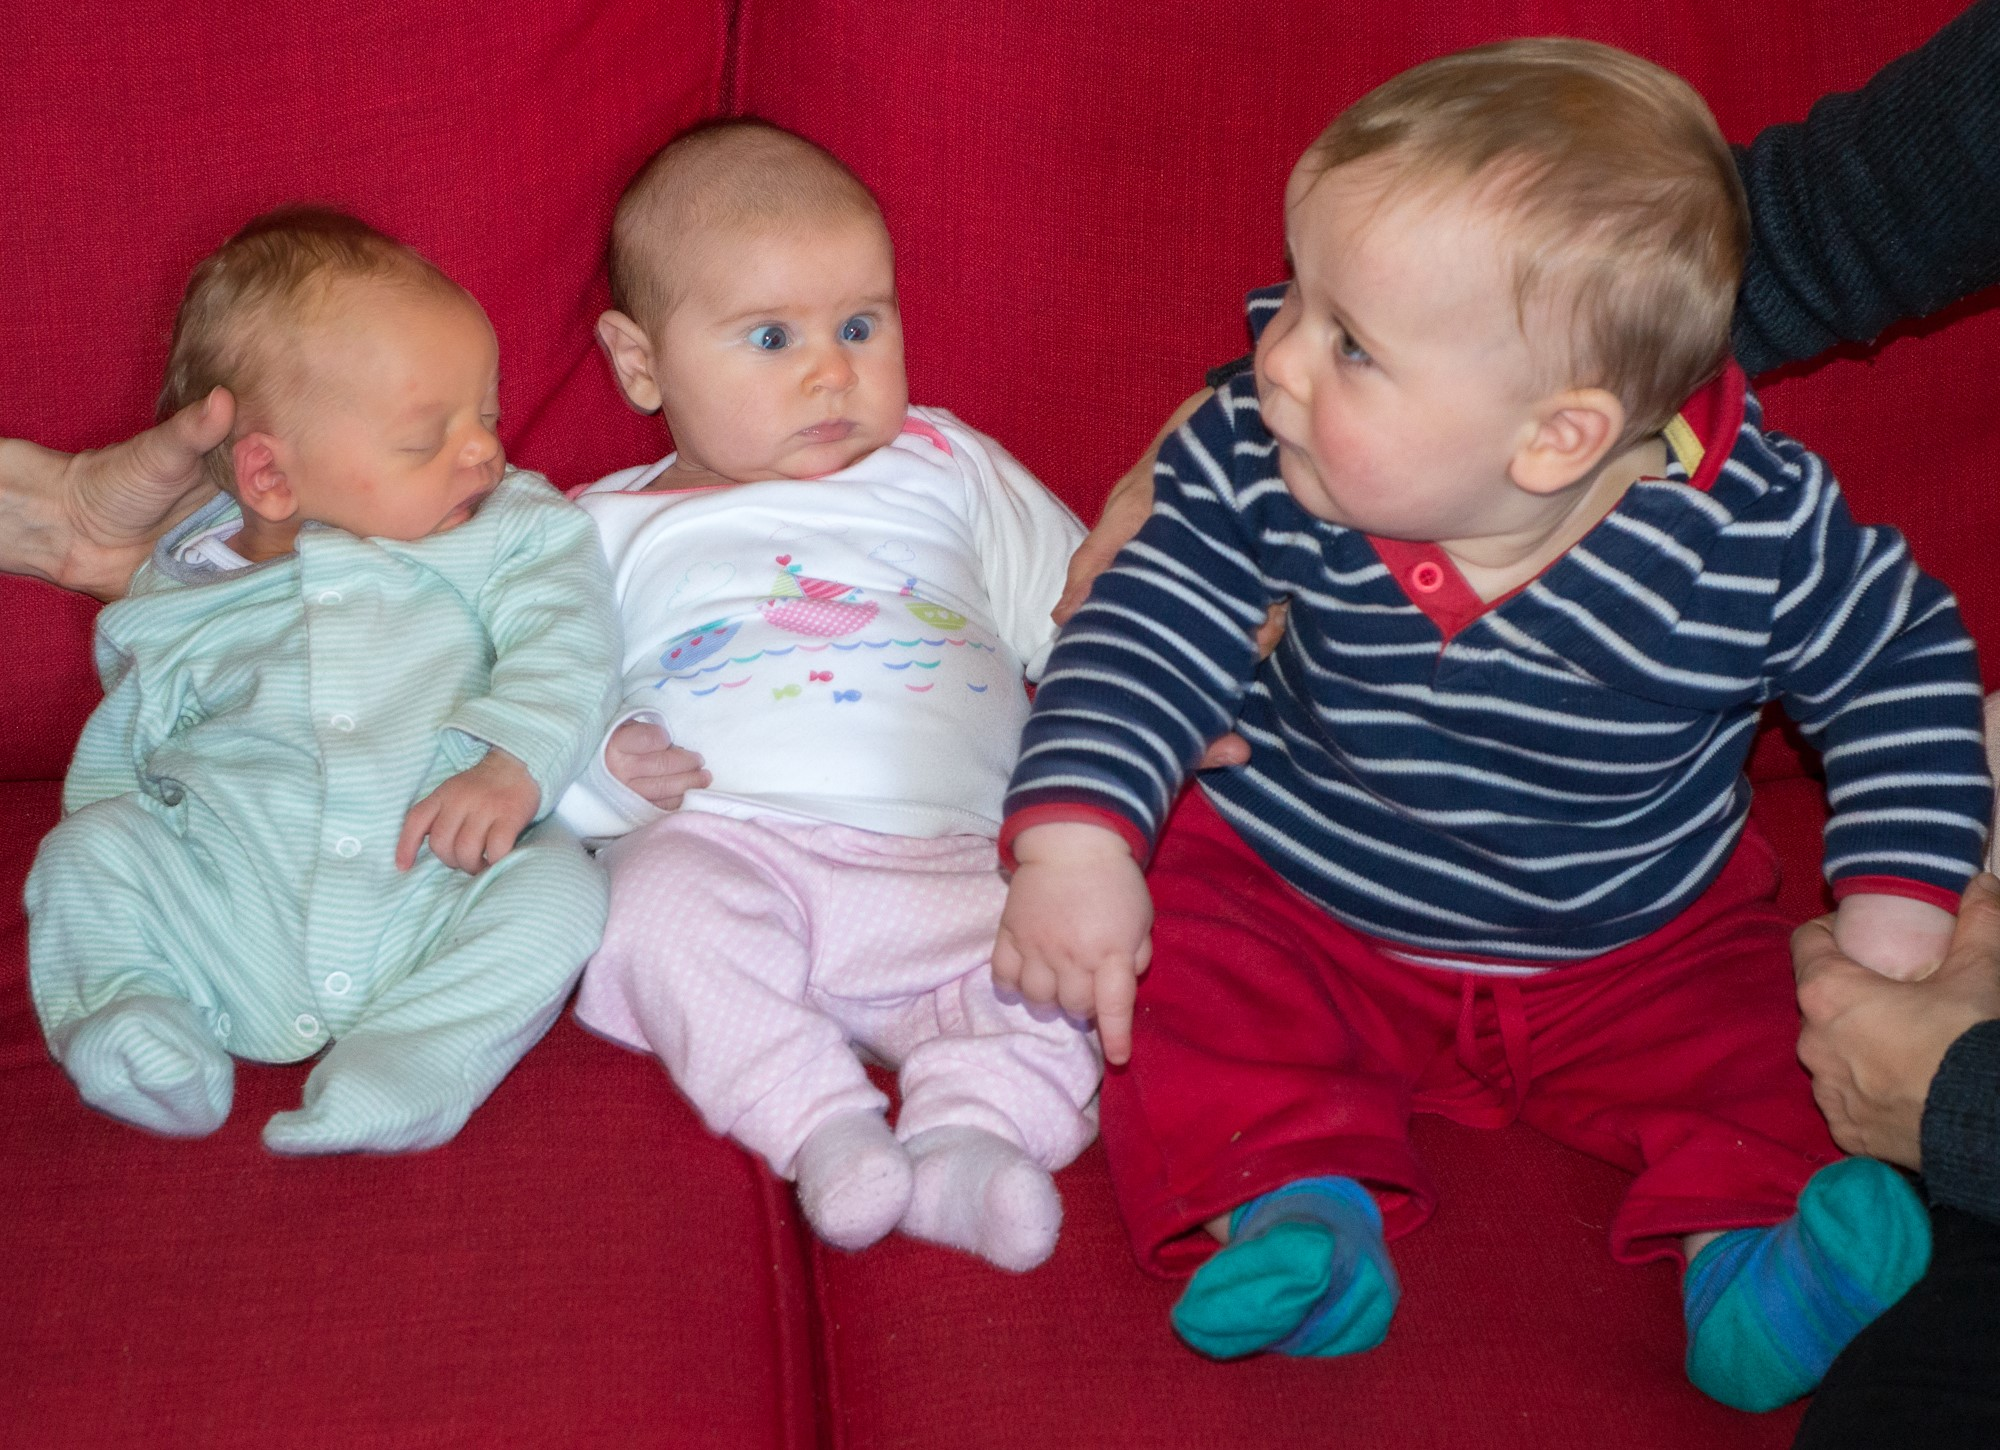 The Stile babies: Thomas (left) meets Hannah (Andrew's daughter, centre) and Danny (Kate's son, right)